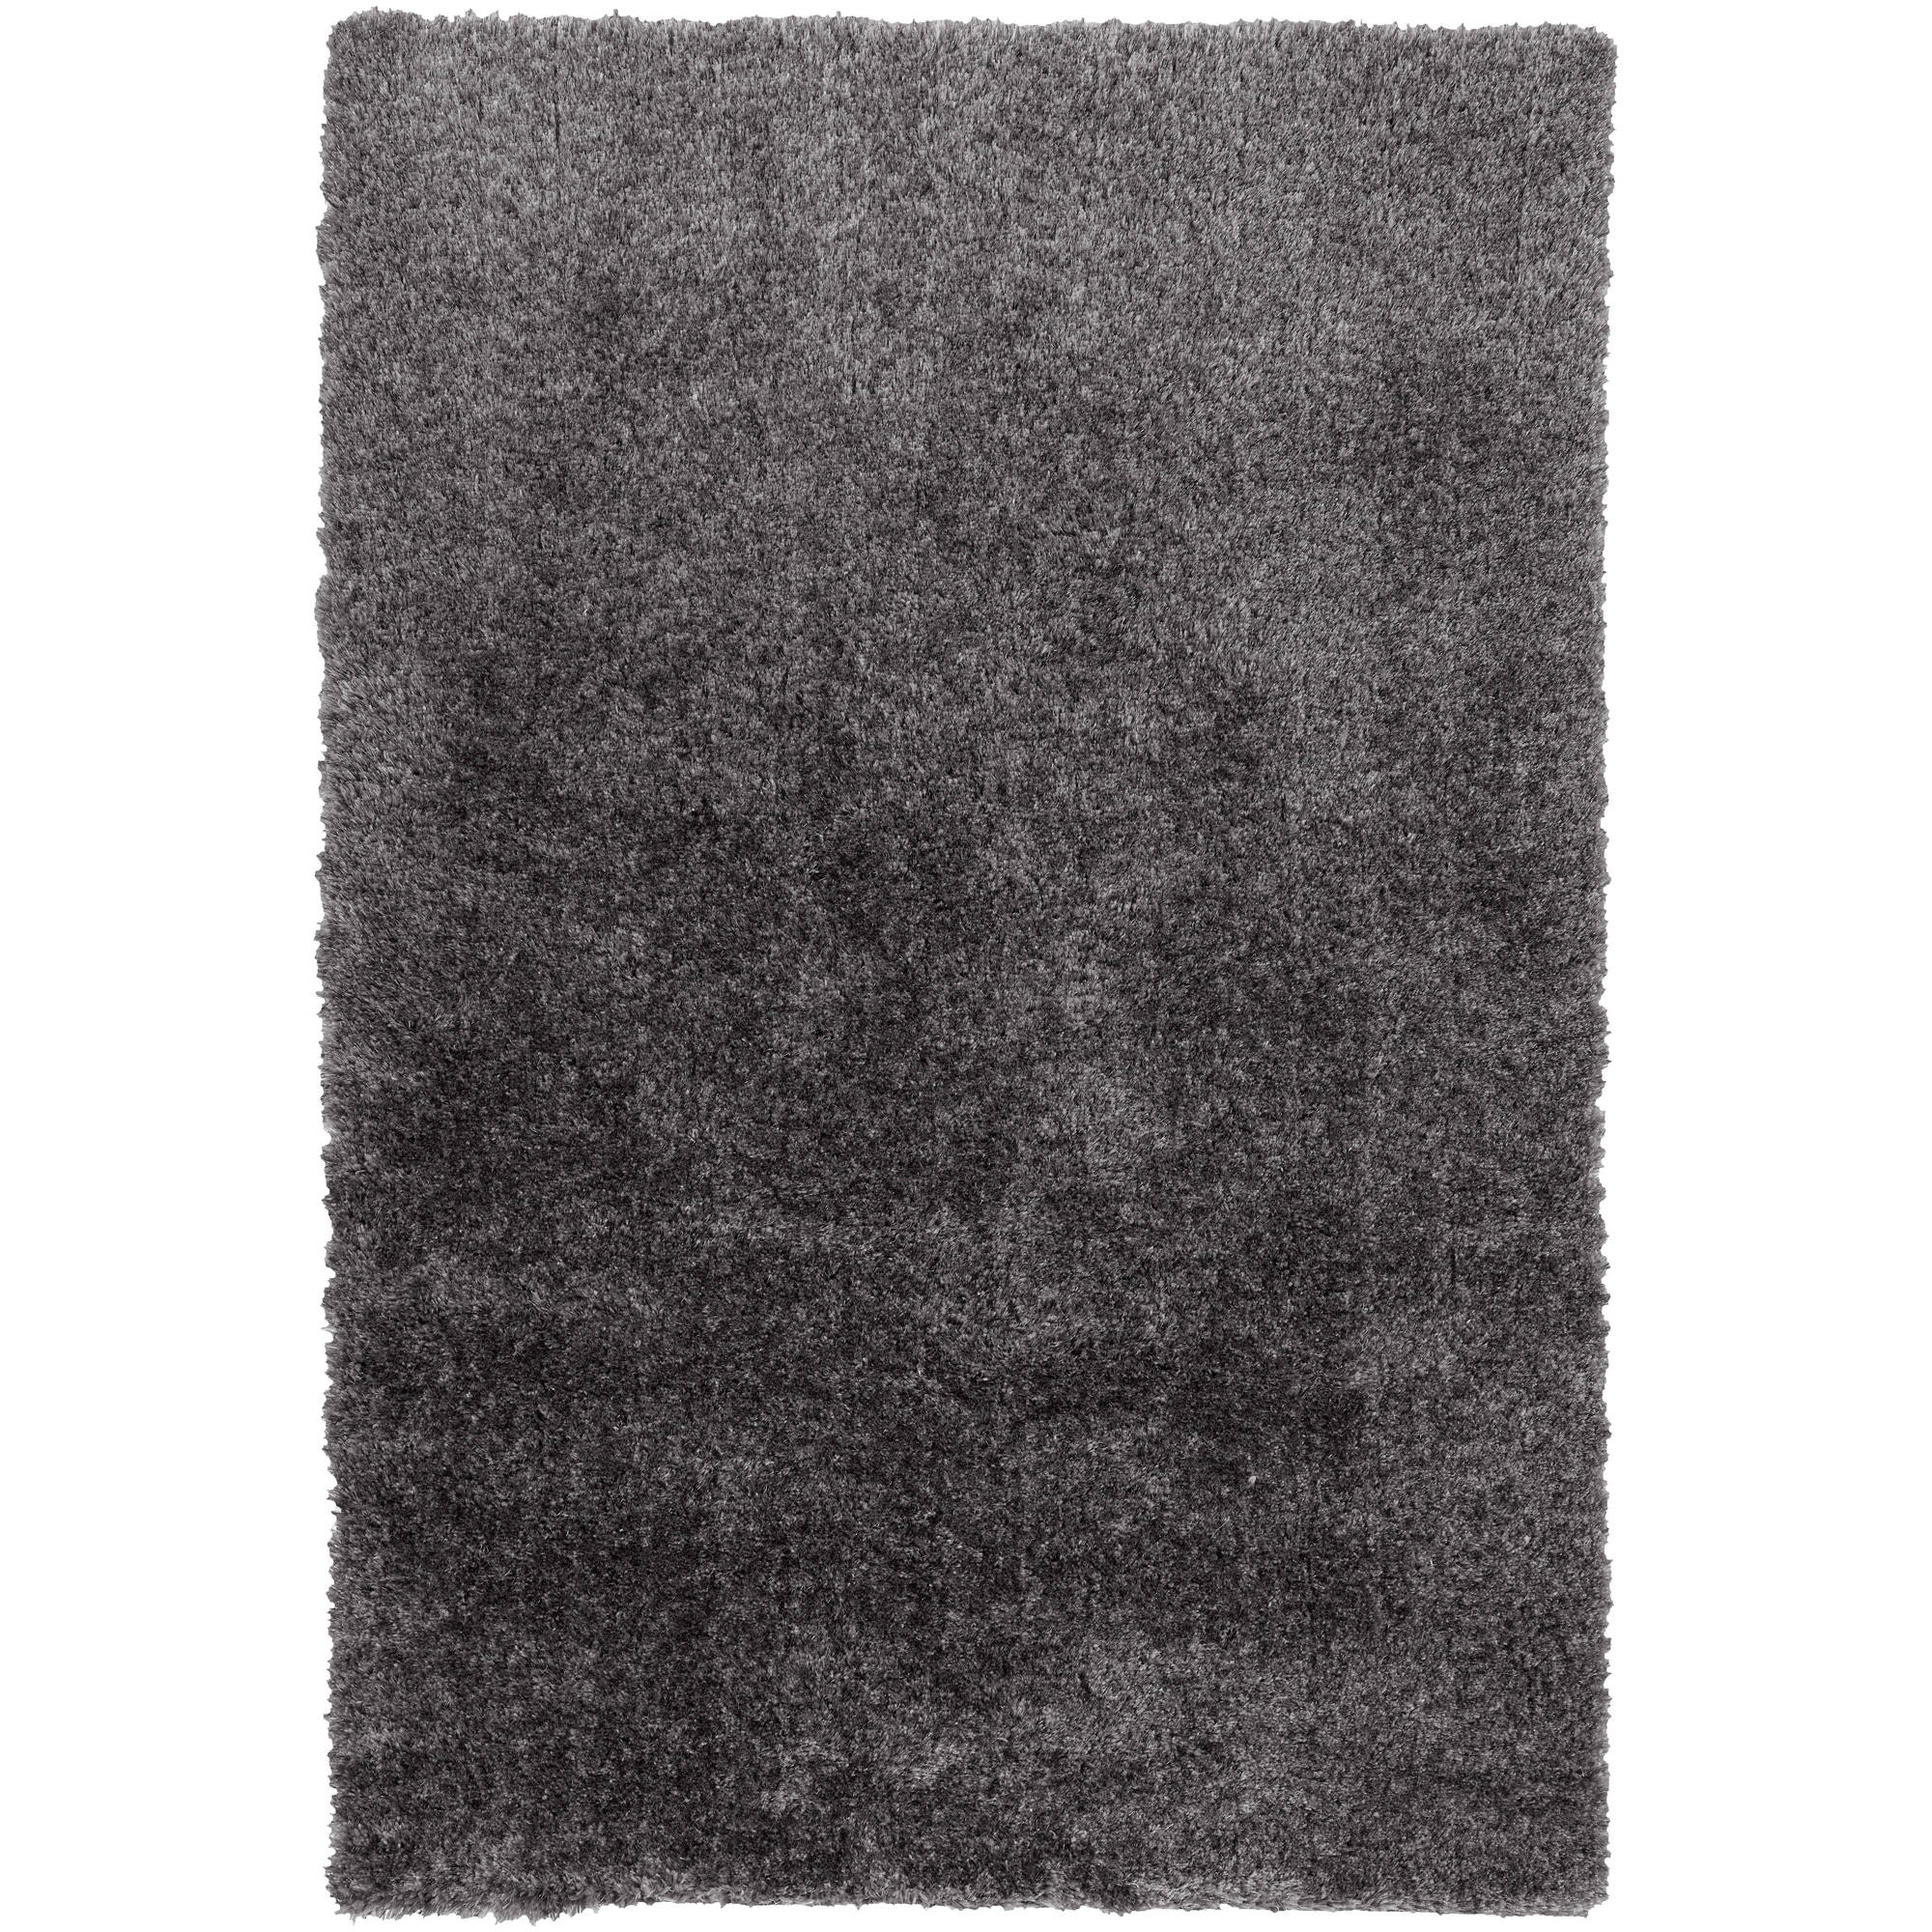 Dalyn Rug | Cabot Taupe 5x8 Area Rug